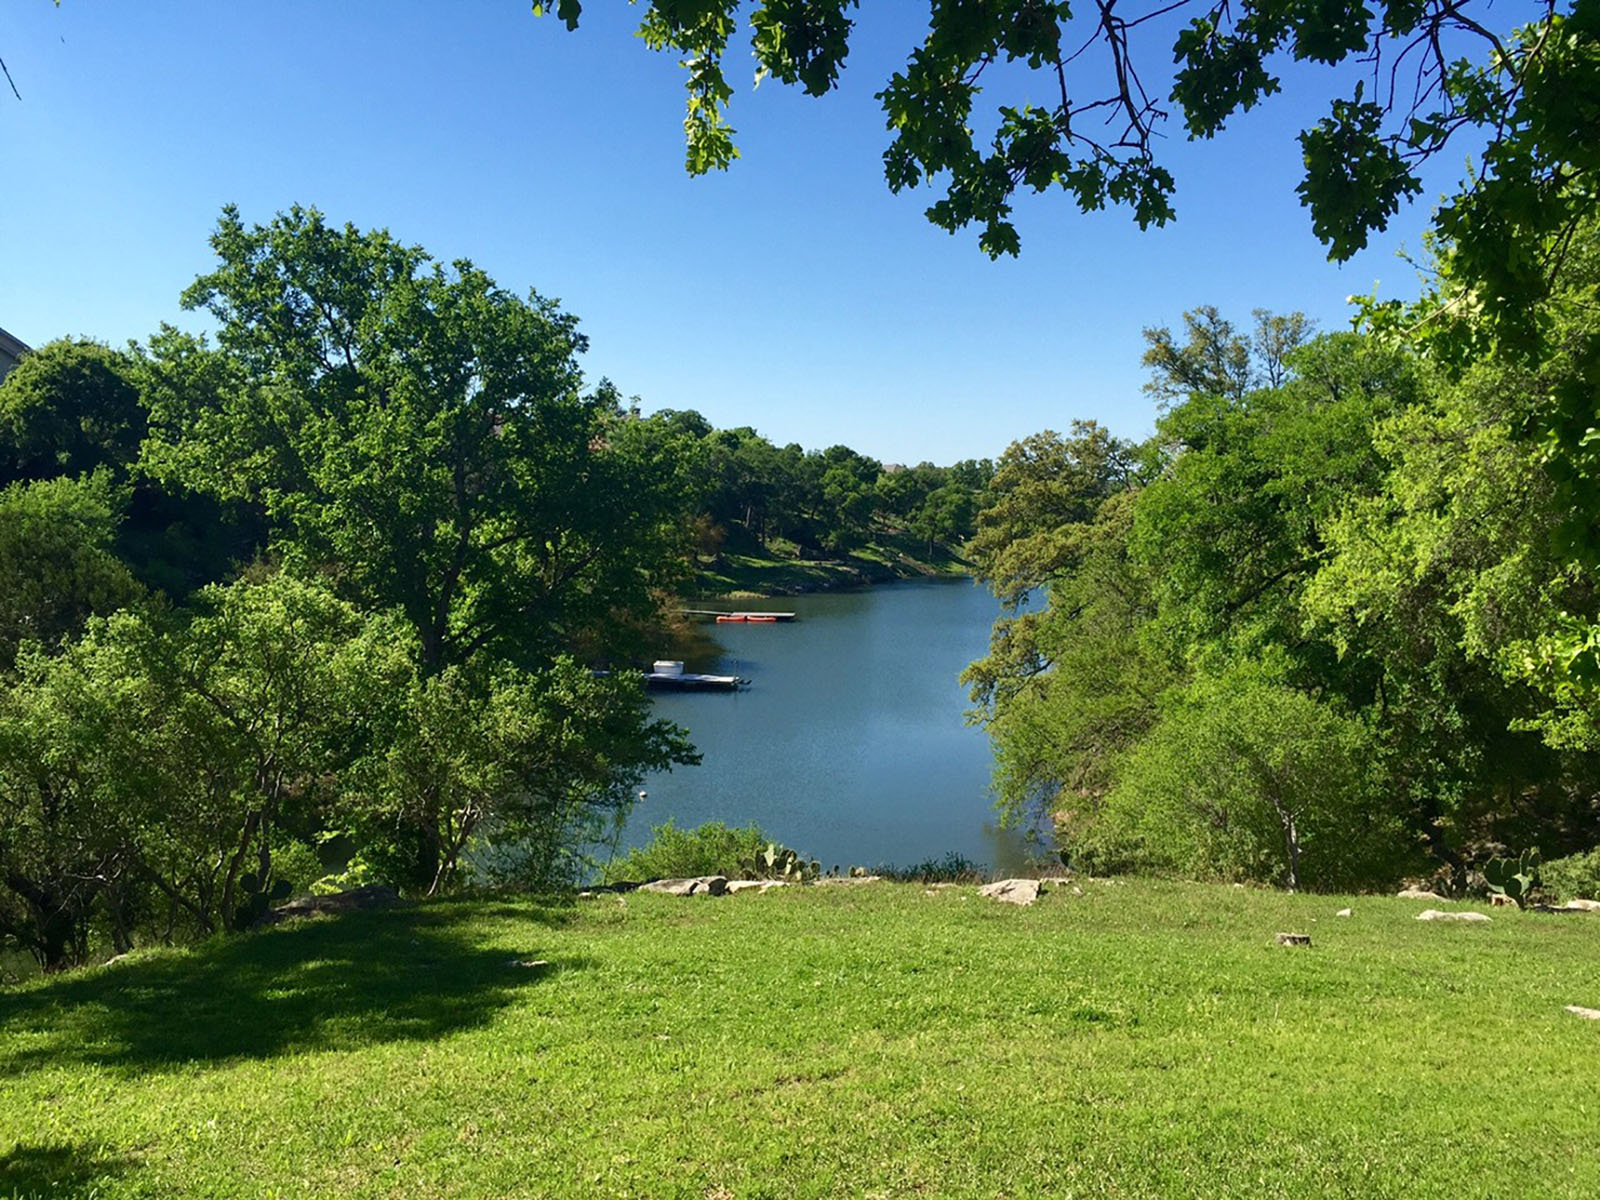 Additional photo for property listing at Serene Lakeside Luxury 2930 Travis Lakeside Dr Spicewood, Texas 78669 United States